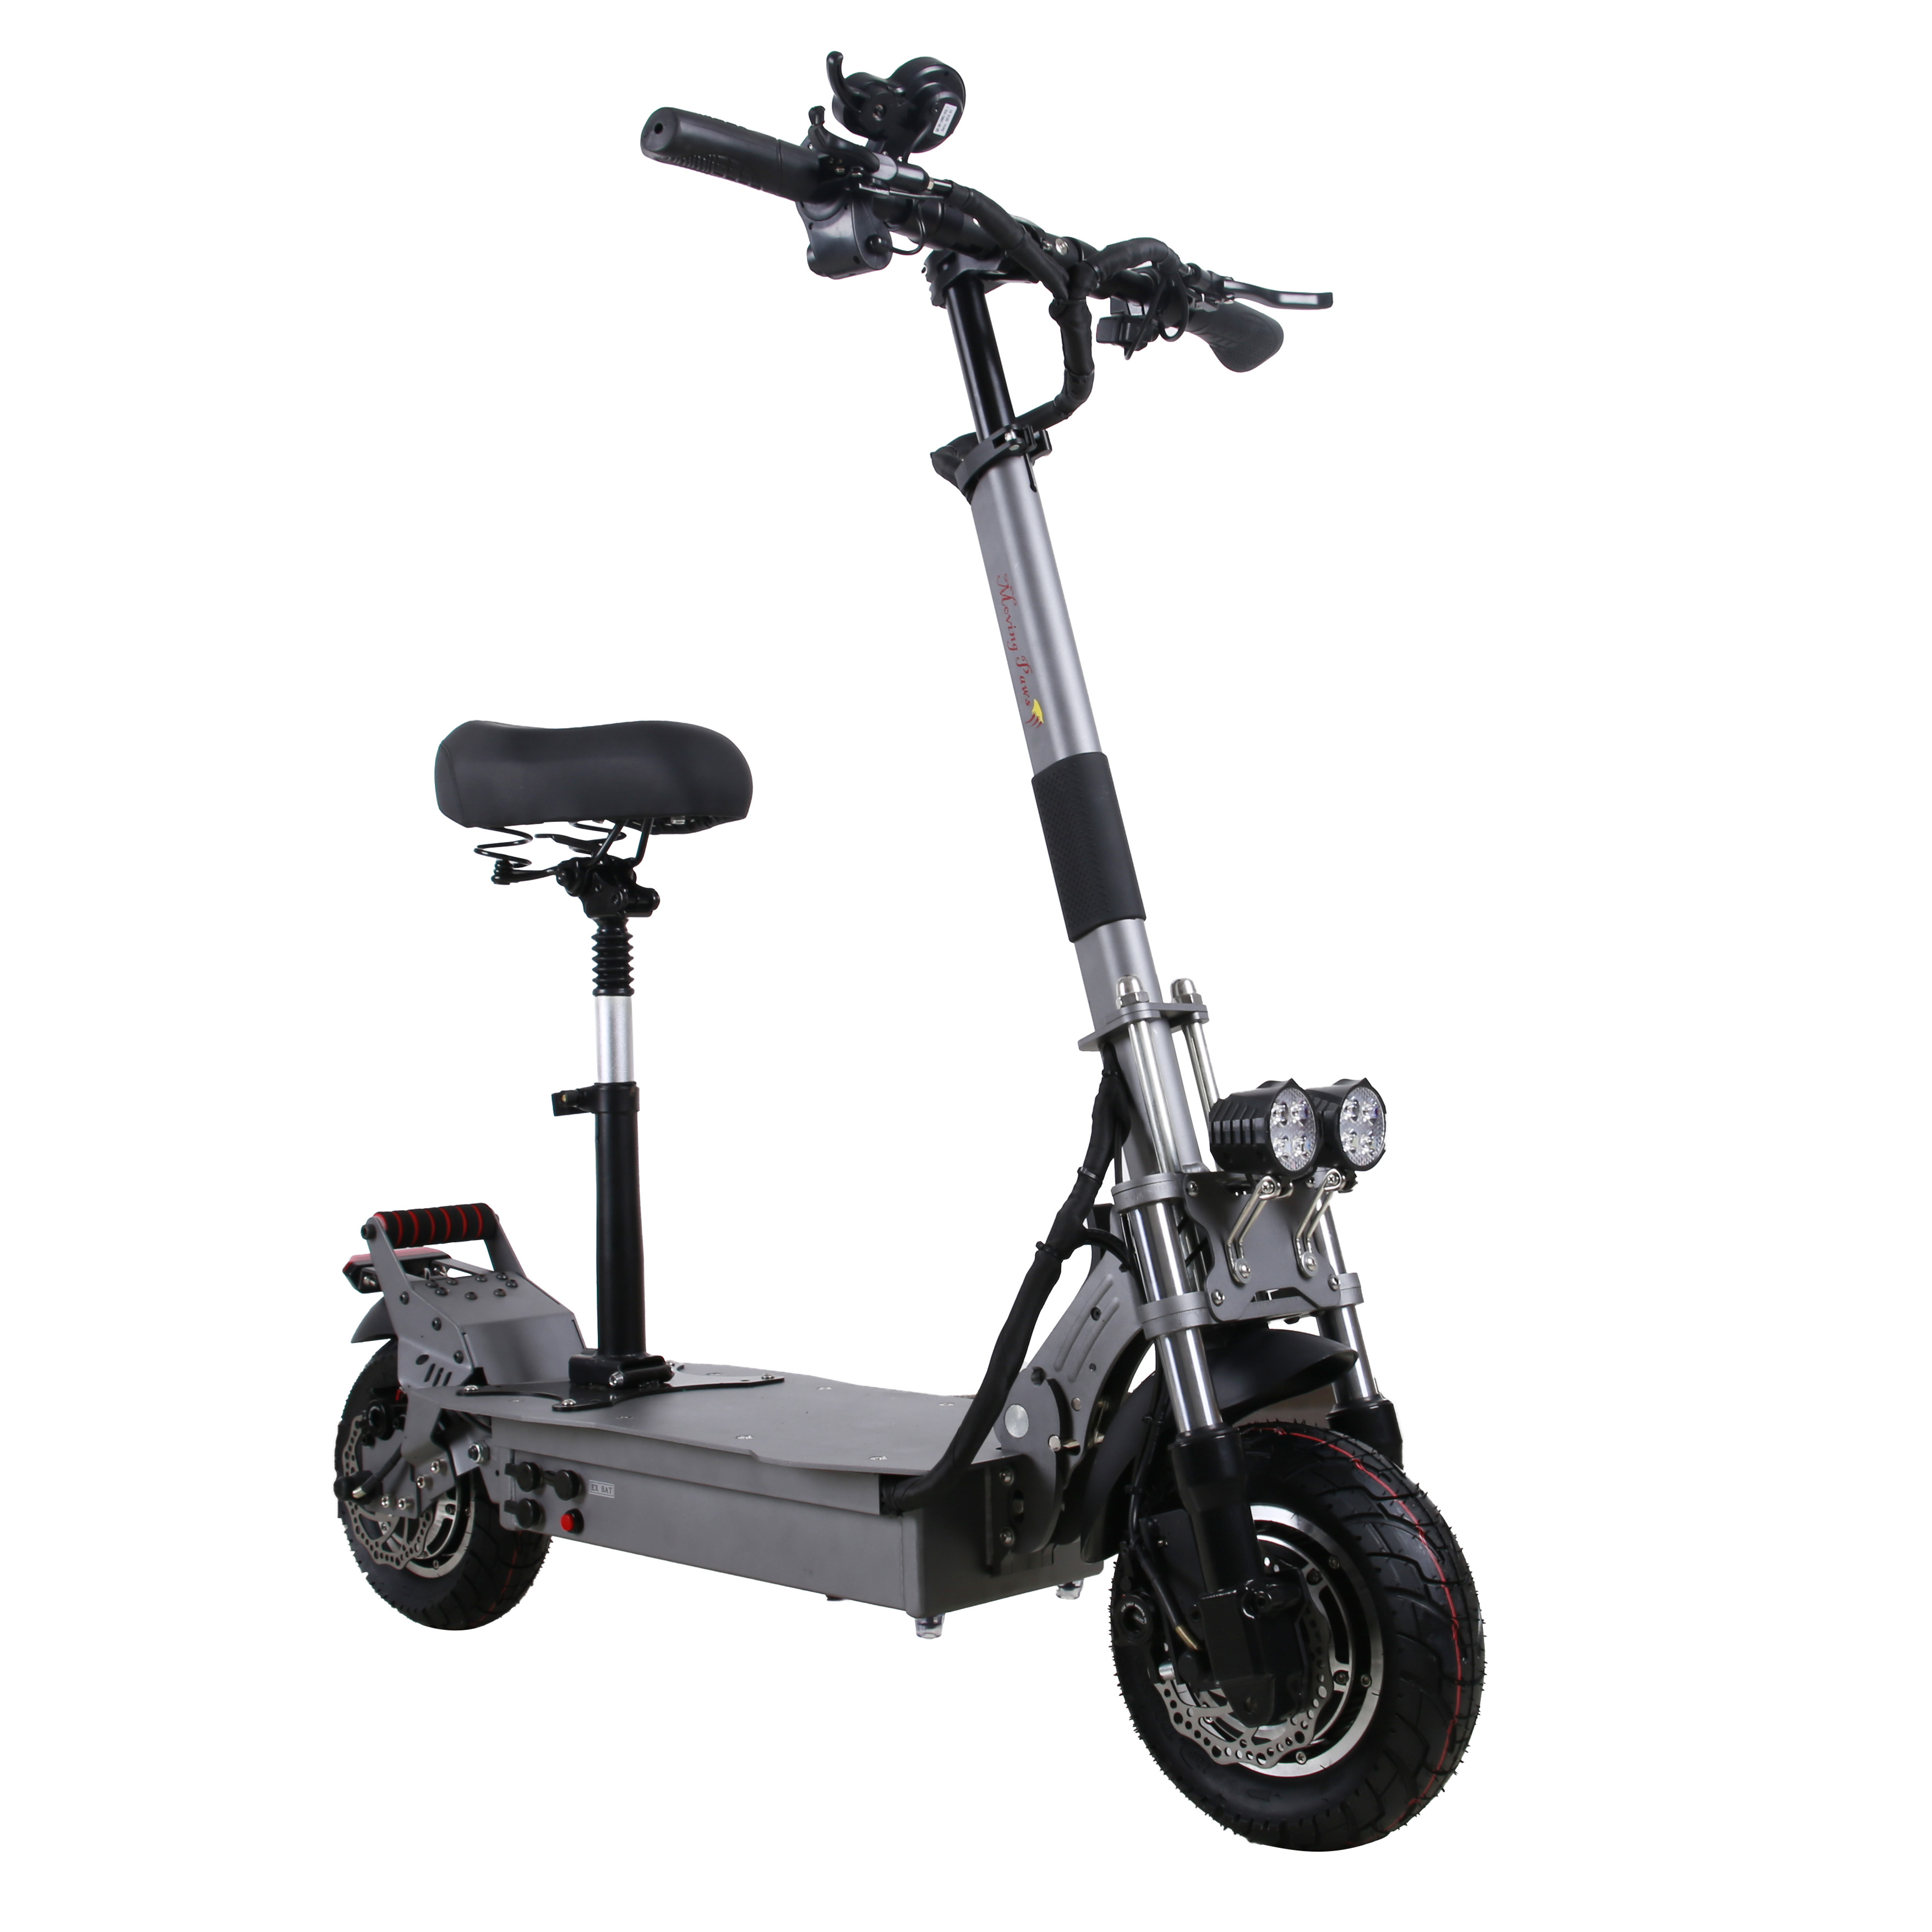 EU Stock UBGO Moving Paws MP-10D01 52V32A LG Battery Double Driver <font><b>Motor</b></font> Powerful <font><b>Electric</b></font> <font><b>Scooter</b></font> 10 Inch E-<font><b>Scooter</b></font> image